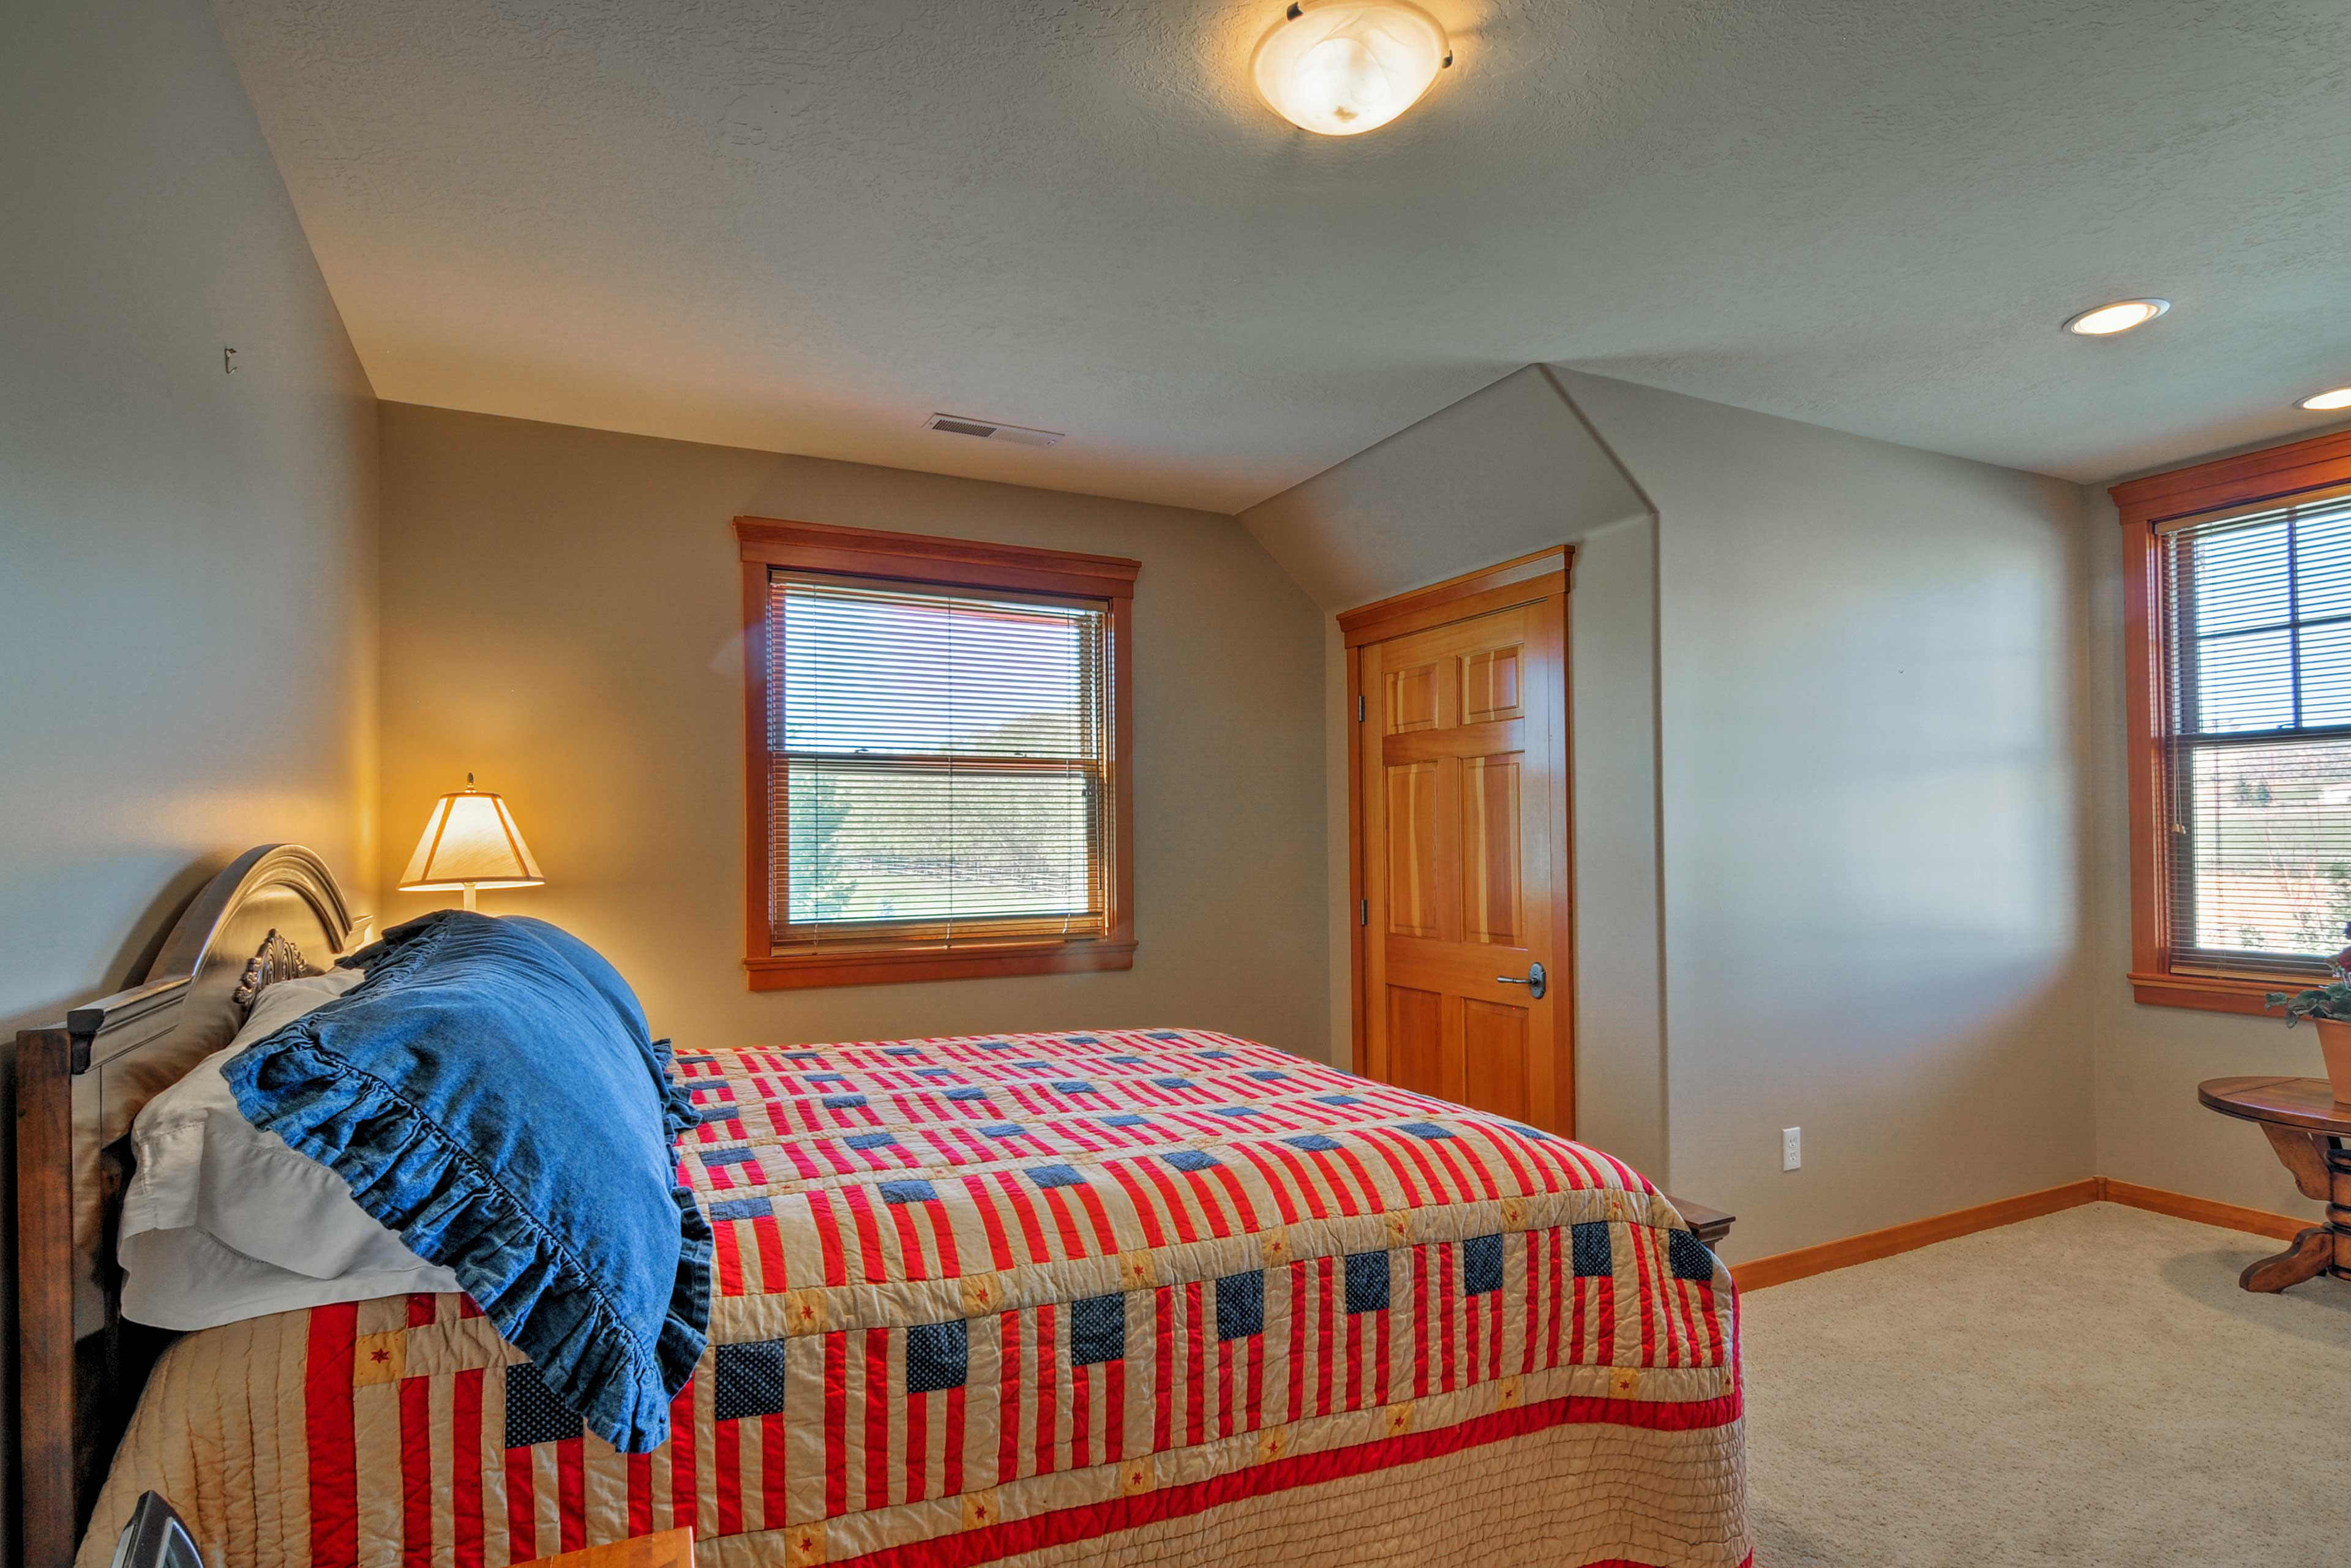 The fourth bedroom features a queen-sized bed & numerous windows!